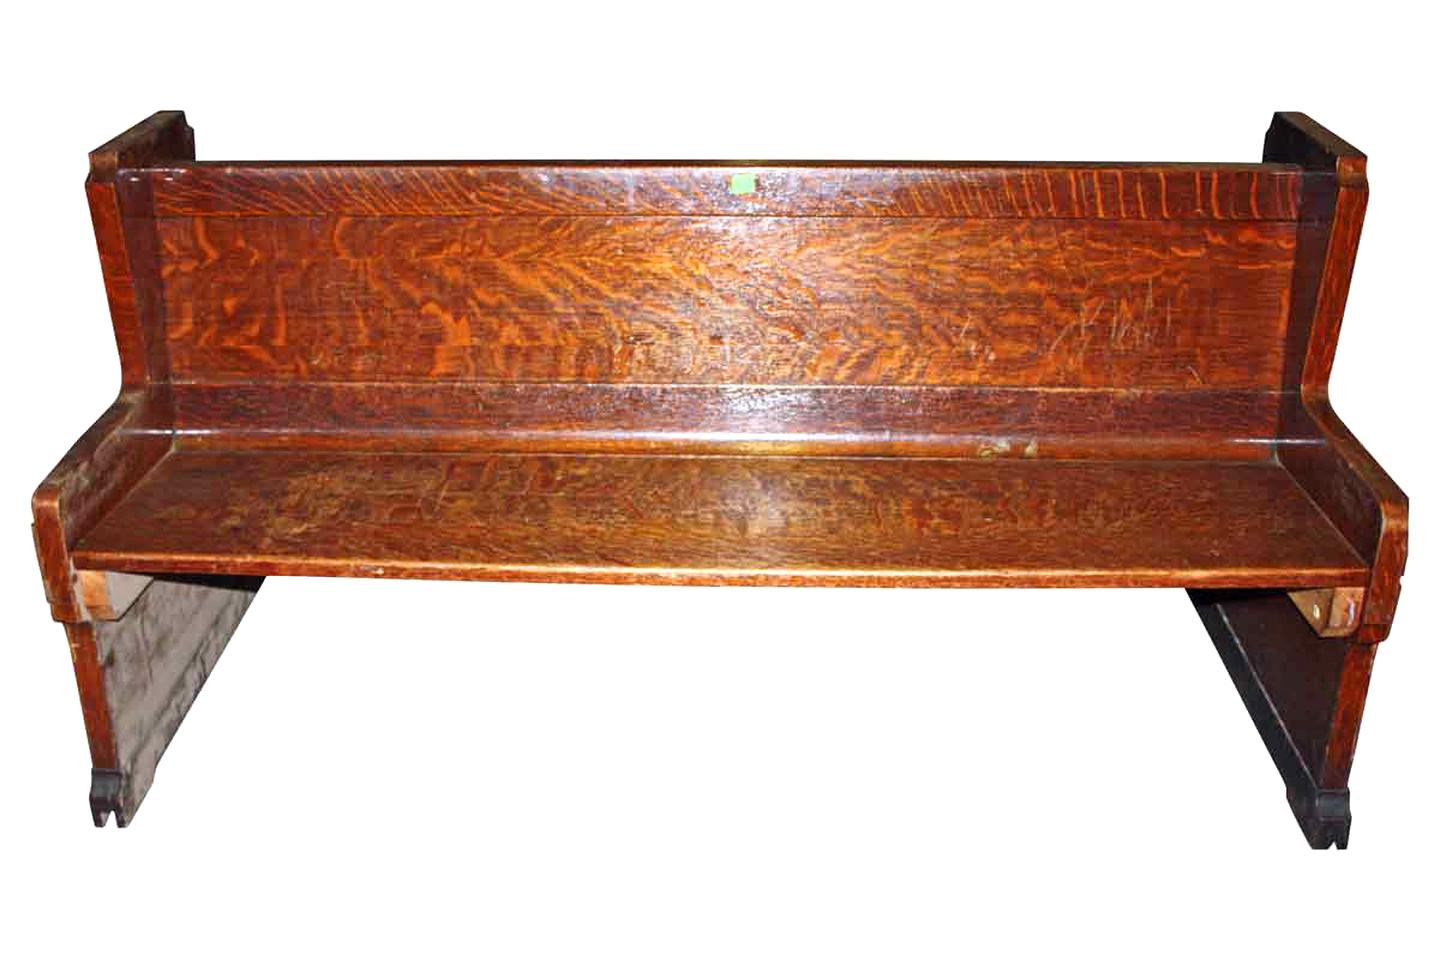 Admirable Oak Church Pew For Sale Only 2 Left At 70 Andrewgaddart Wooden Chair Designs For Living Room Andrewgaddartcom